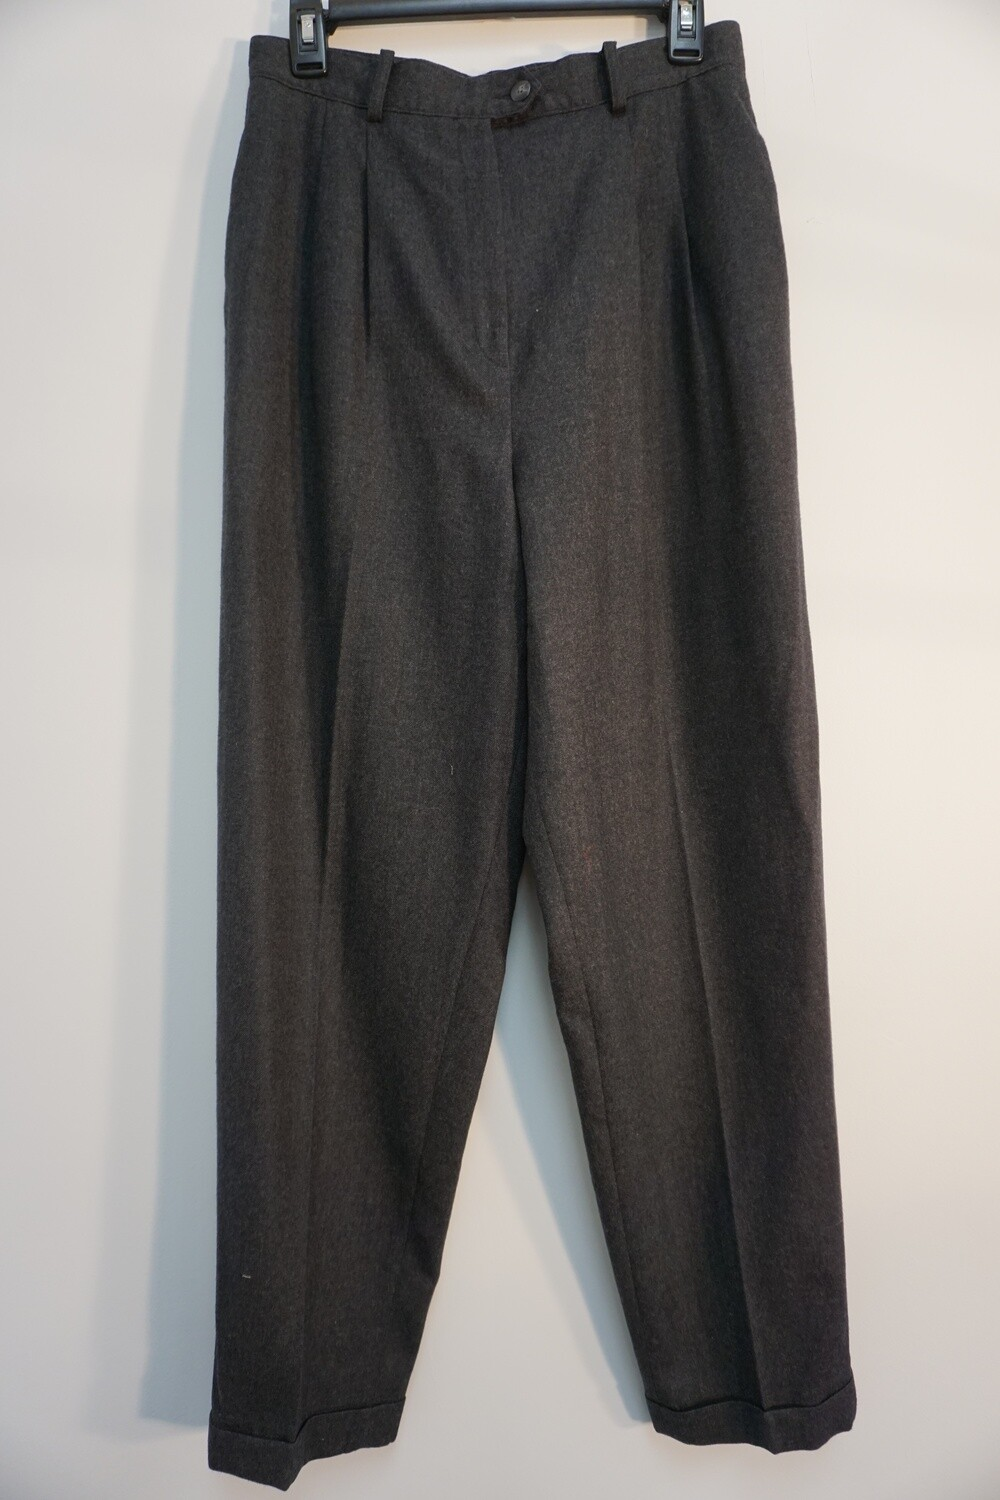 Lands End Pleated Wool Trousers